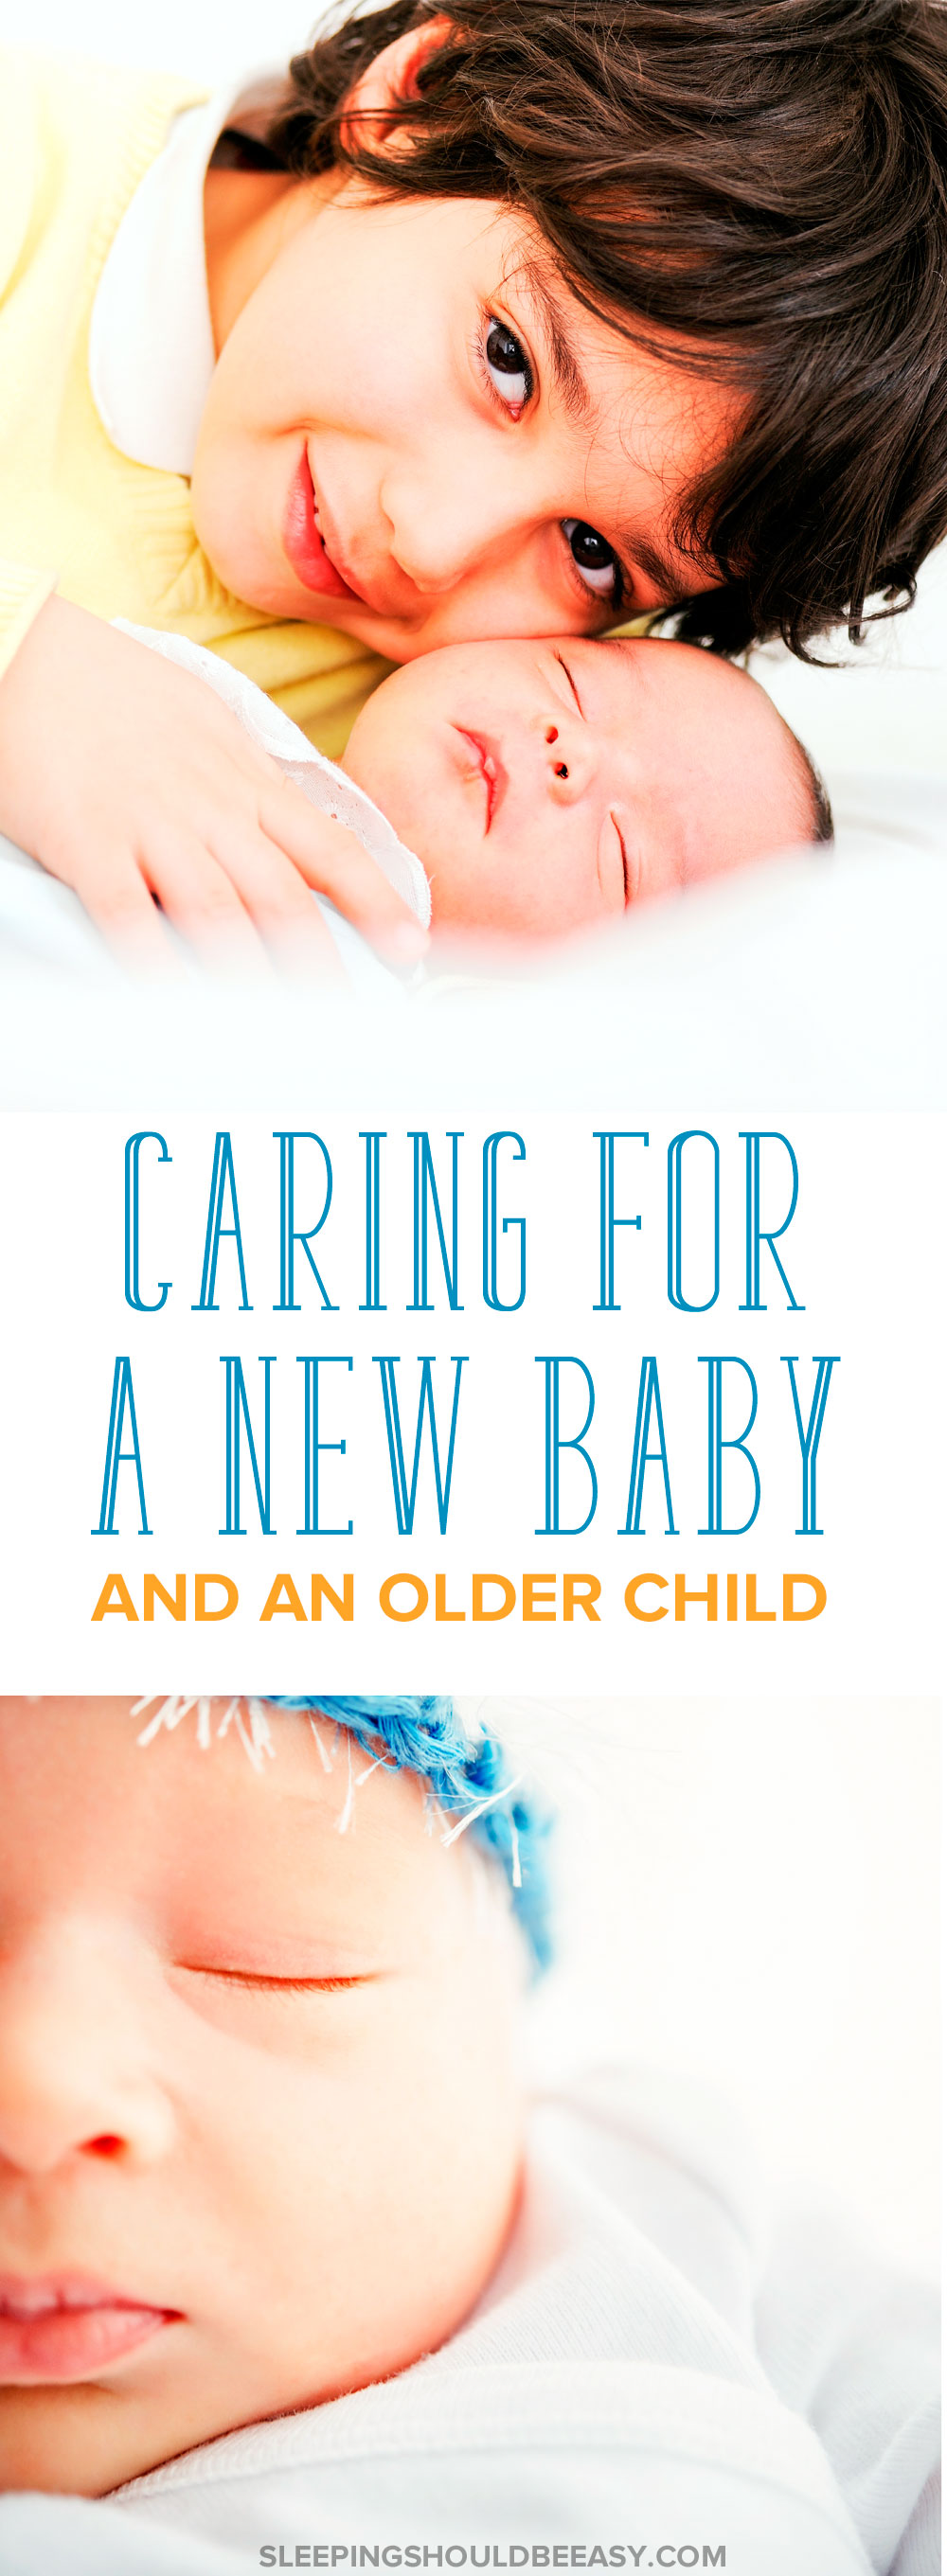 What do you do when you're caring for a baby AND your older child? Here's how to balance the needs of your newborn and his siblings.